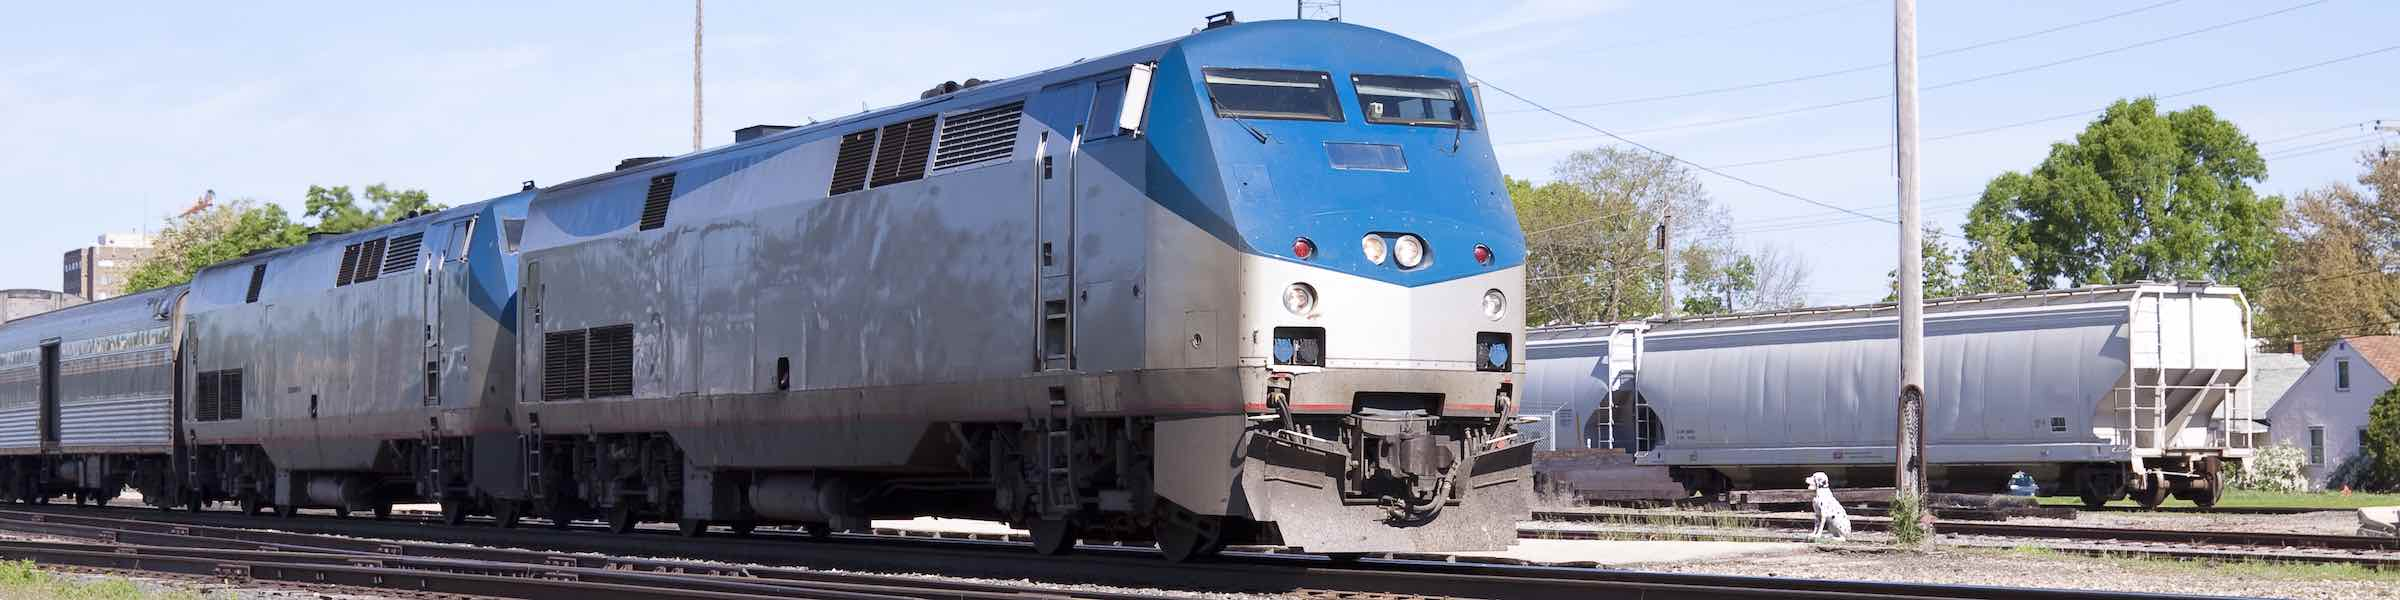 Locomotive and first carriage of a blue and silver Amtrak train in a siding.